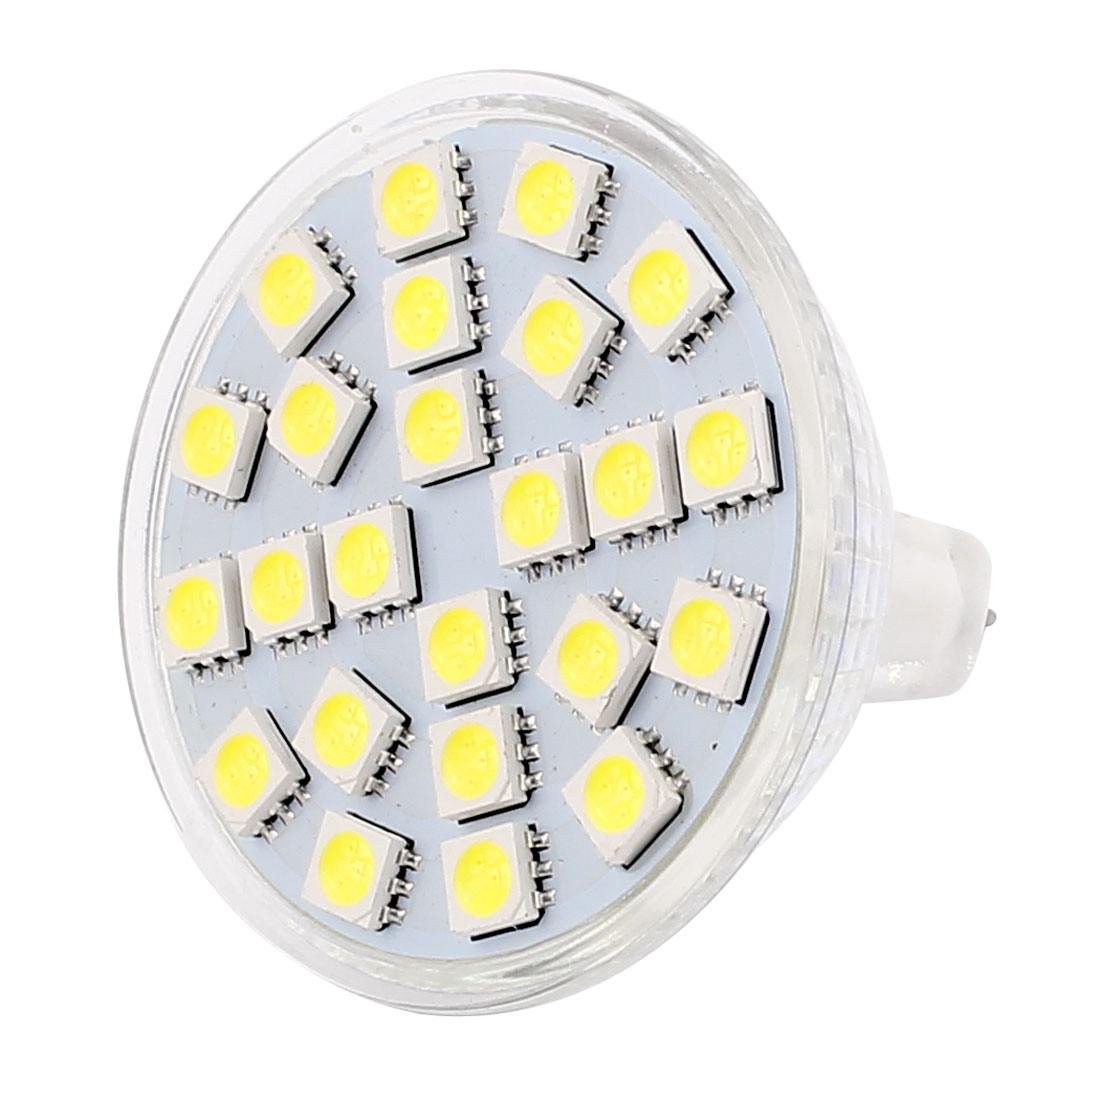 MR16 AC 220V 3W SMD5050 24LEDs Glass Energy Saving LED Lamp Bulb White